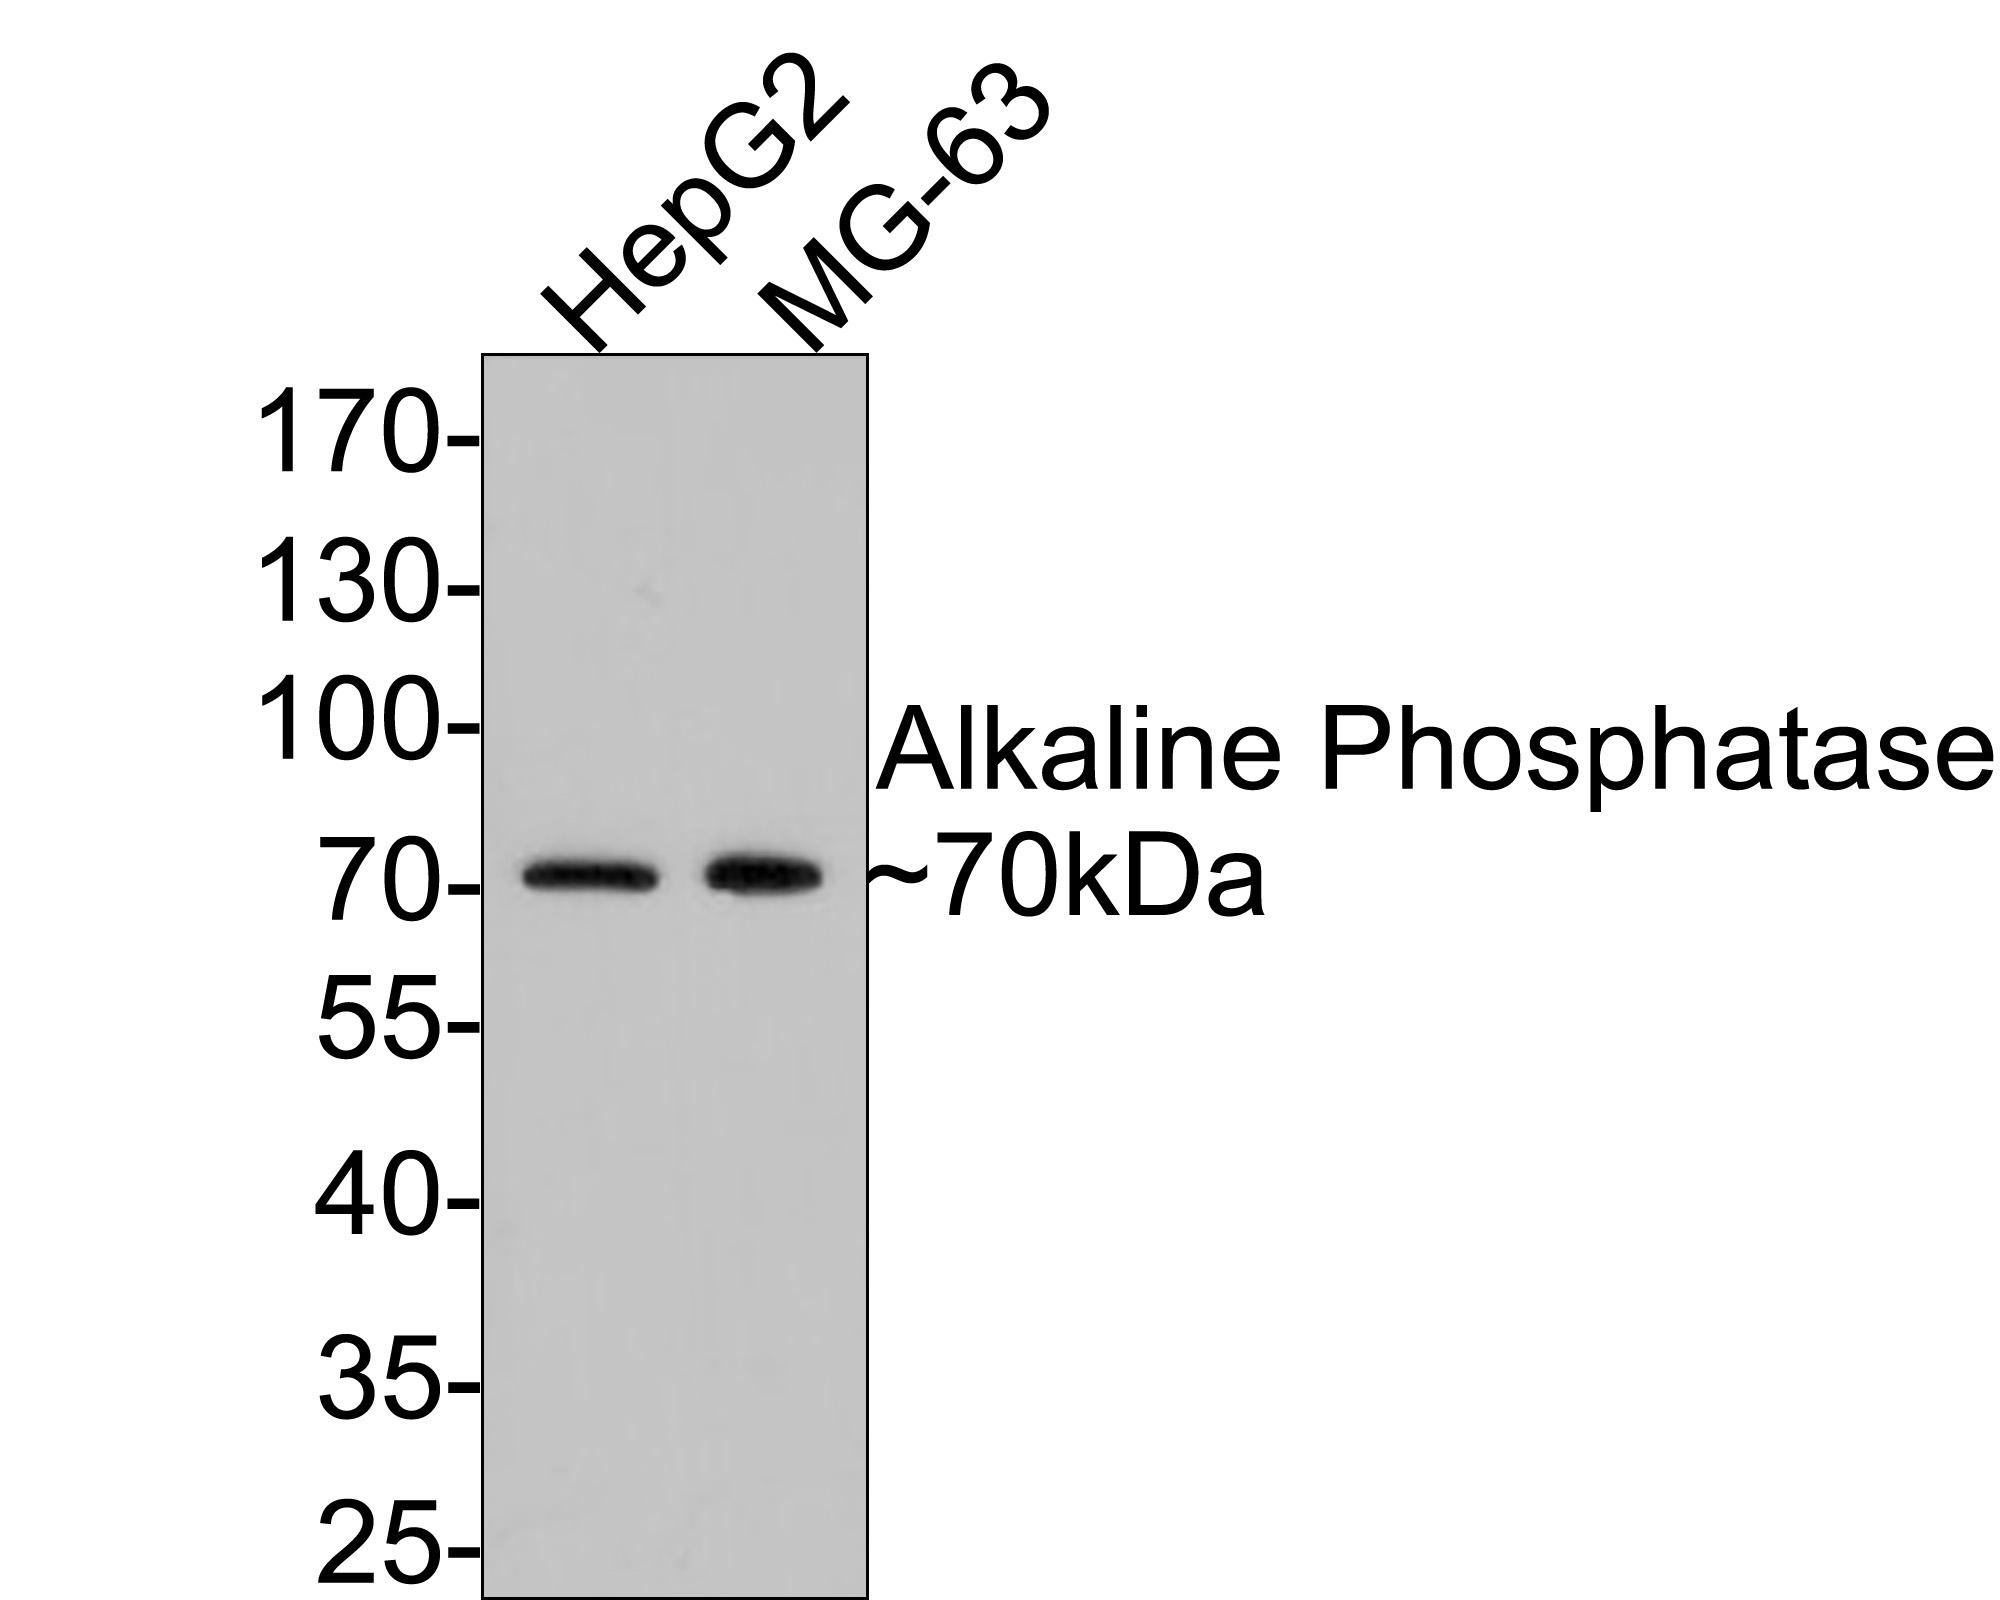 Western blot analysis of Alkaline Phosphatase on different lysates. Proteins were transferred to a PVDF membrane and blocked with 5% BSA in PBS for 1 hour at room temperature. The primary antibody (ET1601-21, 1/500) was used in 5% BSA at room temperature for 2 hours. Goat Anti-Rabbit IgG - HRP Secondary Antibody (HA1001) at 1:5,000 dilution was used for 1 hour at room temperature.<br /> Positive control: <br /> Lane 1: Hela cell lysate<br /> Lane 2: HepG2 cell lysate<br /> Lane 2: MG-63 cell lysate